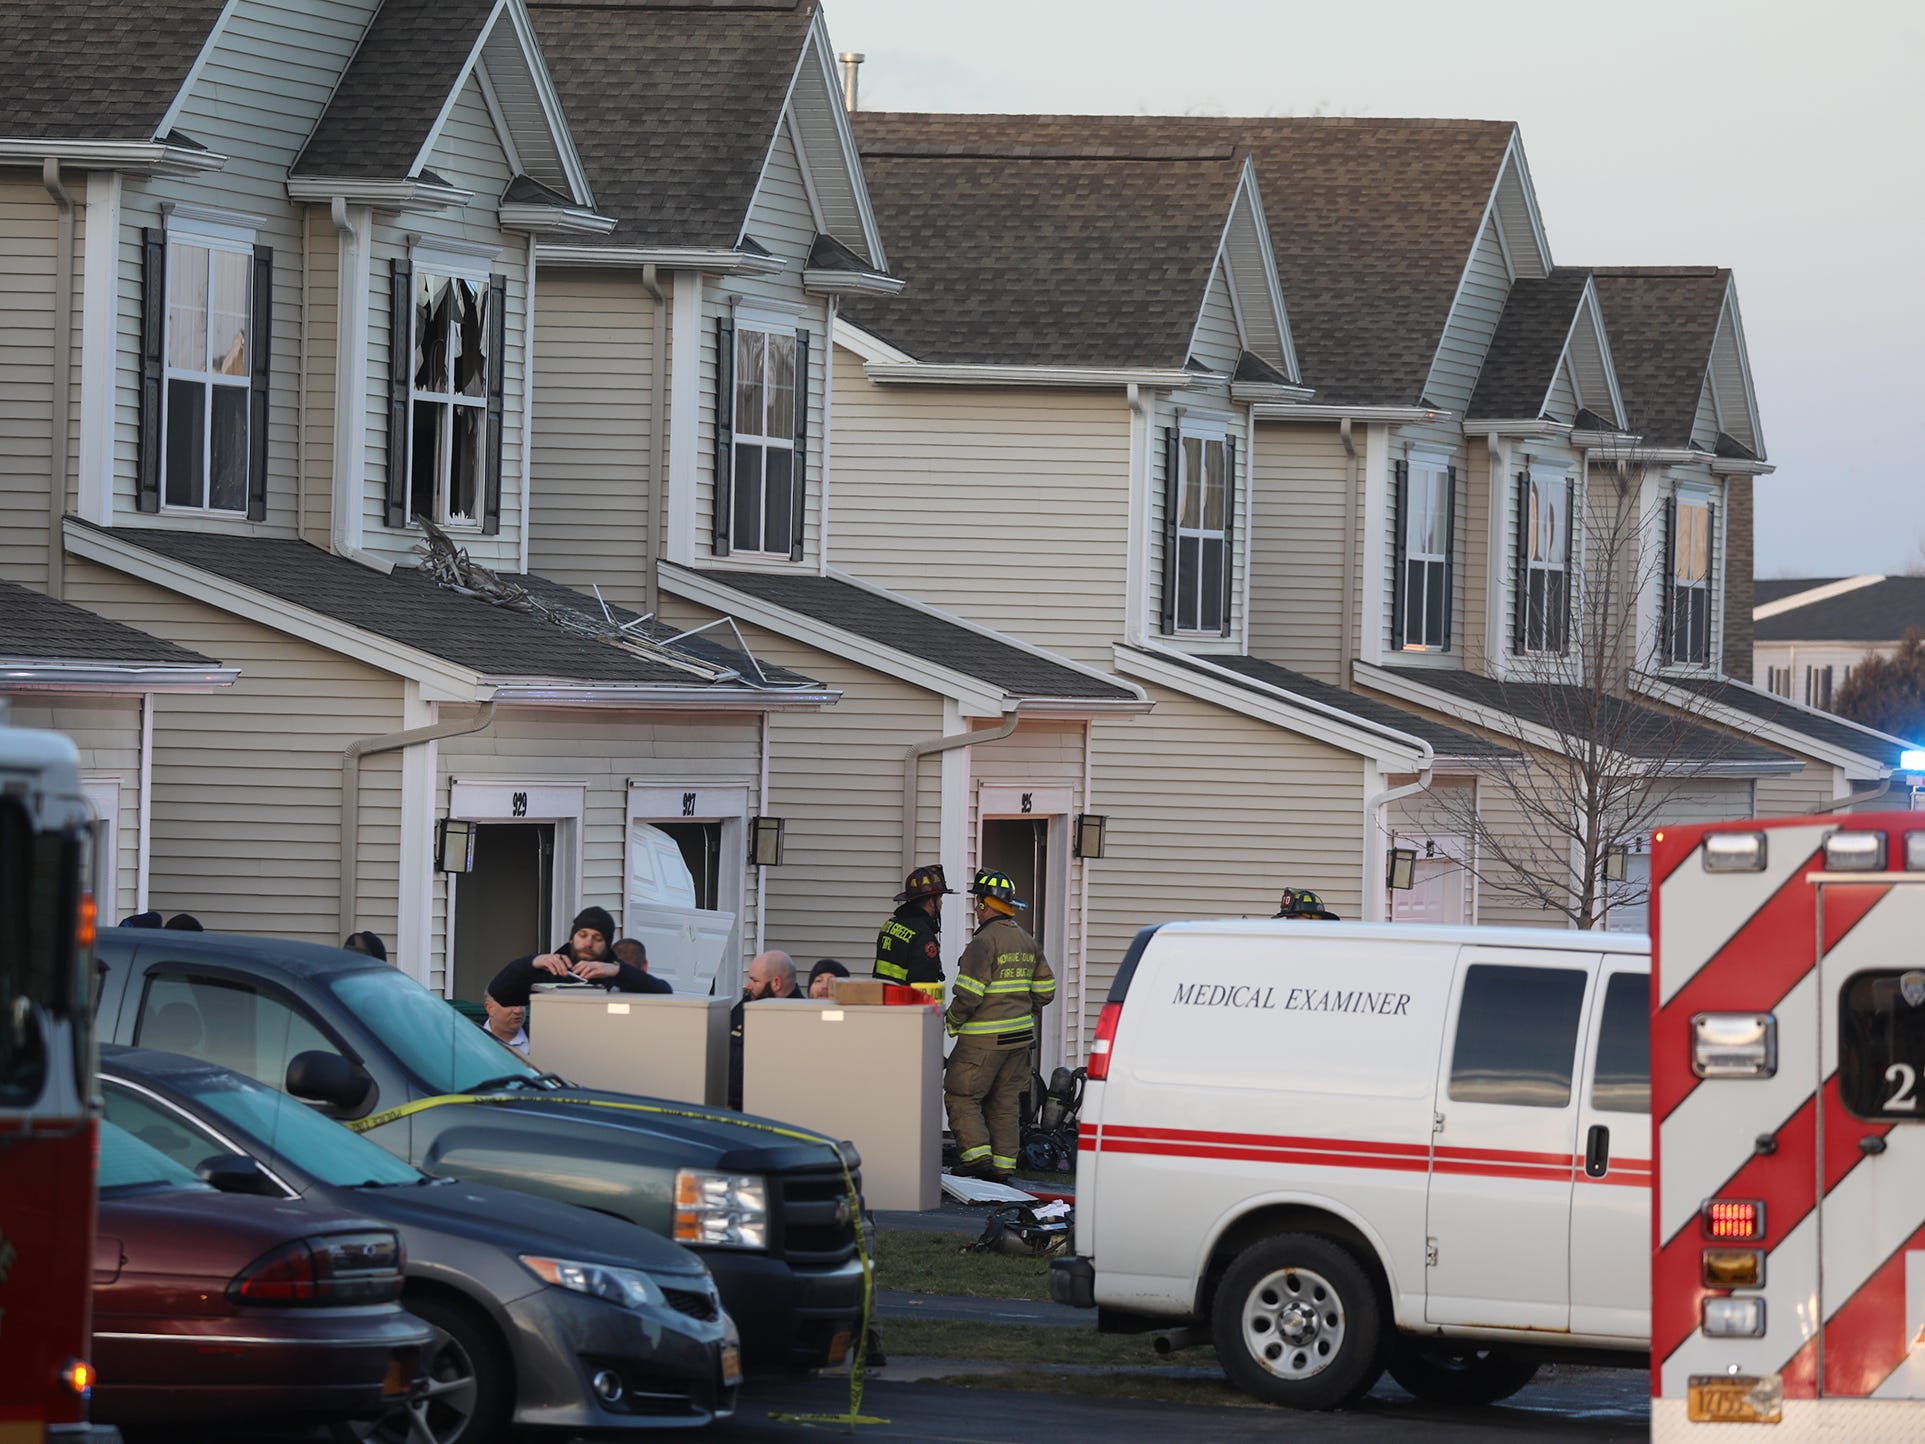 A woman was found dead after Lake Shore Fire Department responded to an early morning fire at Long Pond Shores Waterfront Apartments on Pond View Heights. Police and the Monroe County Fire Bureau are investigating the cause of death and the cause of the fire in the two-story townhouse.